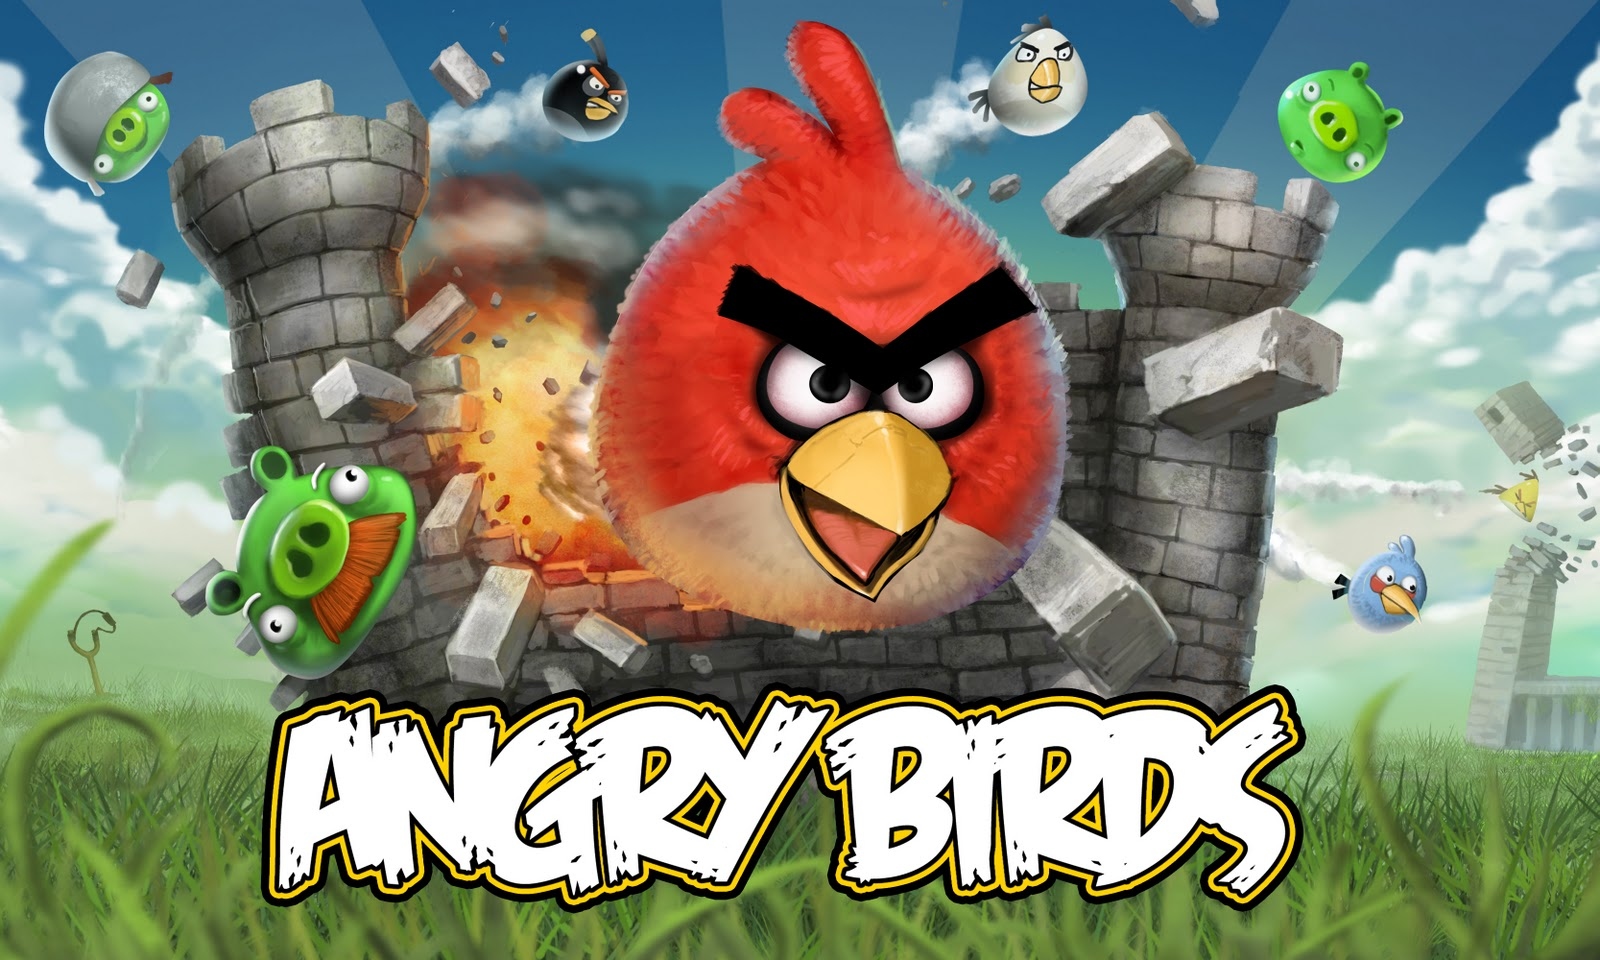 Angry Birds: 12 Million Copies Sold